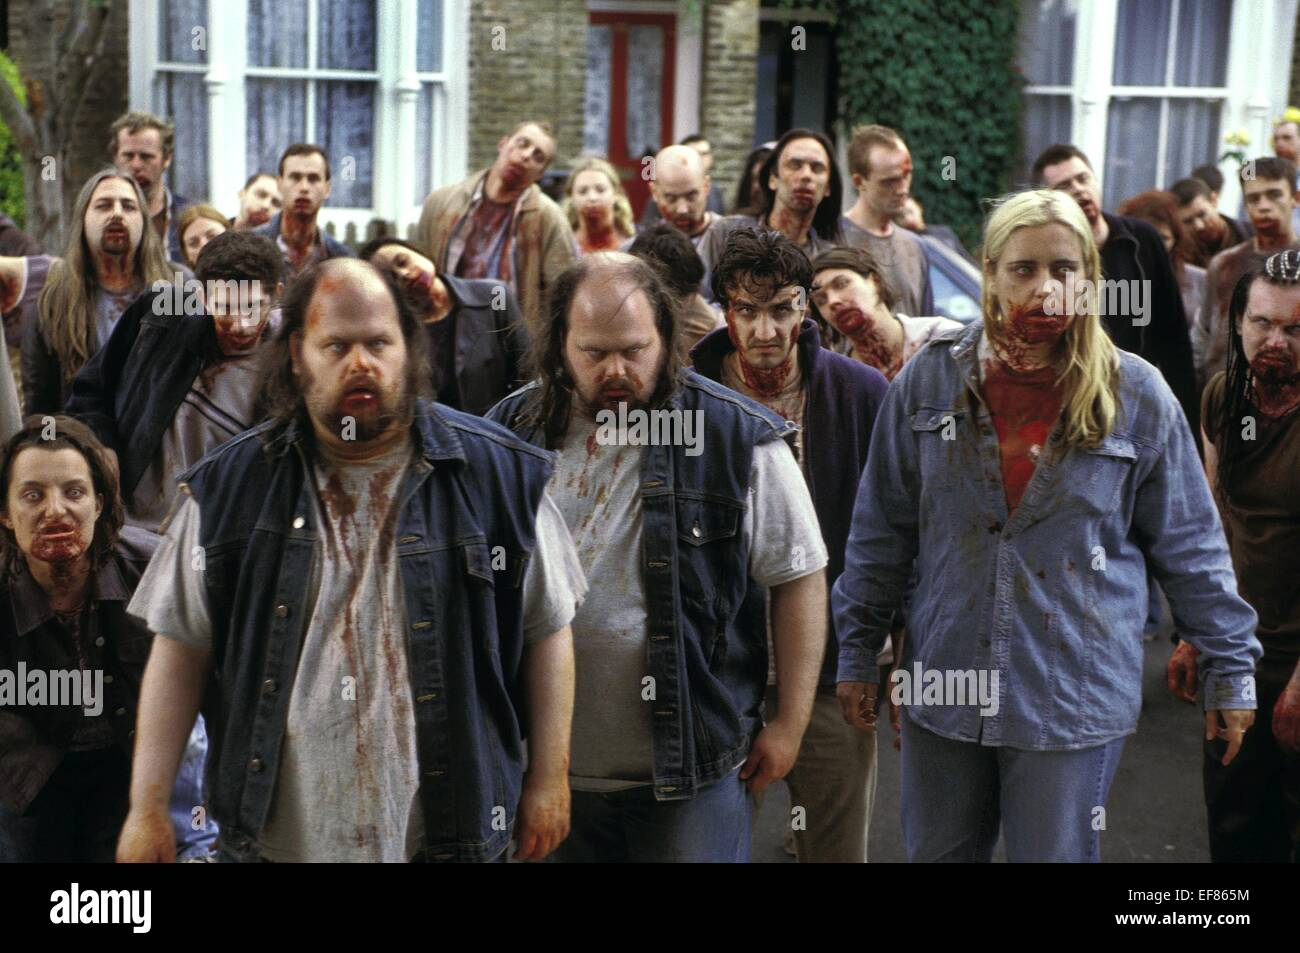 ZOMBIES SHAUN OF THE DEAD (2004) - Stock Image